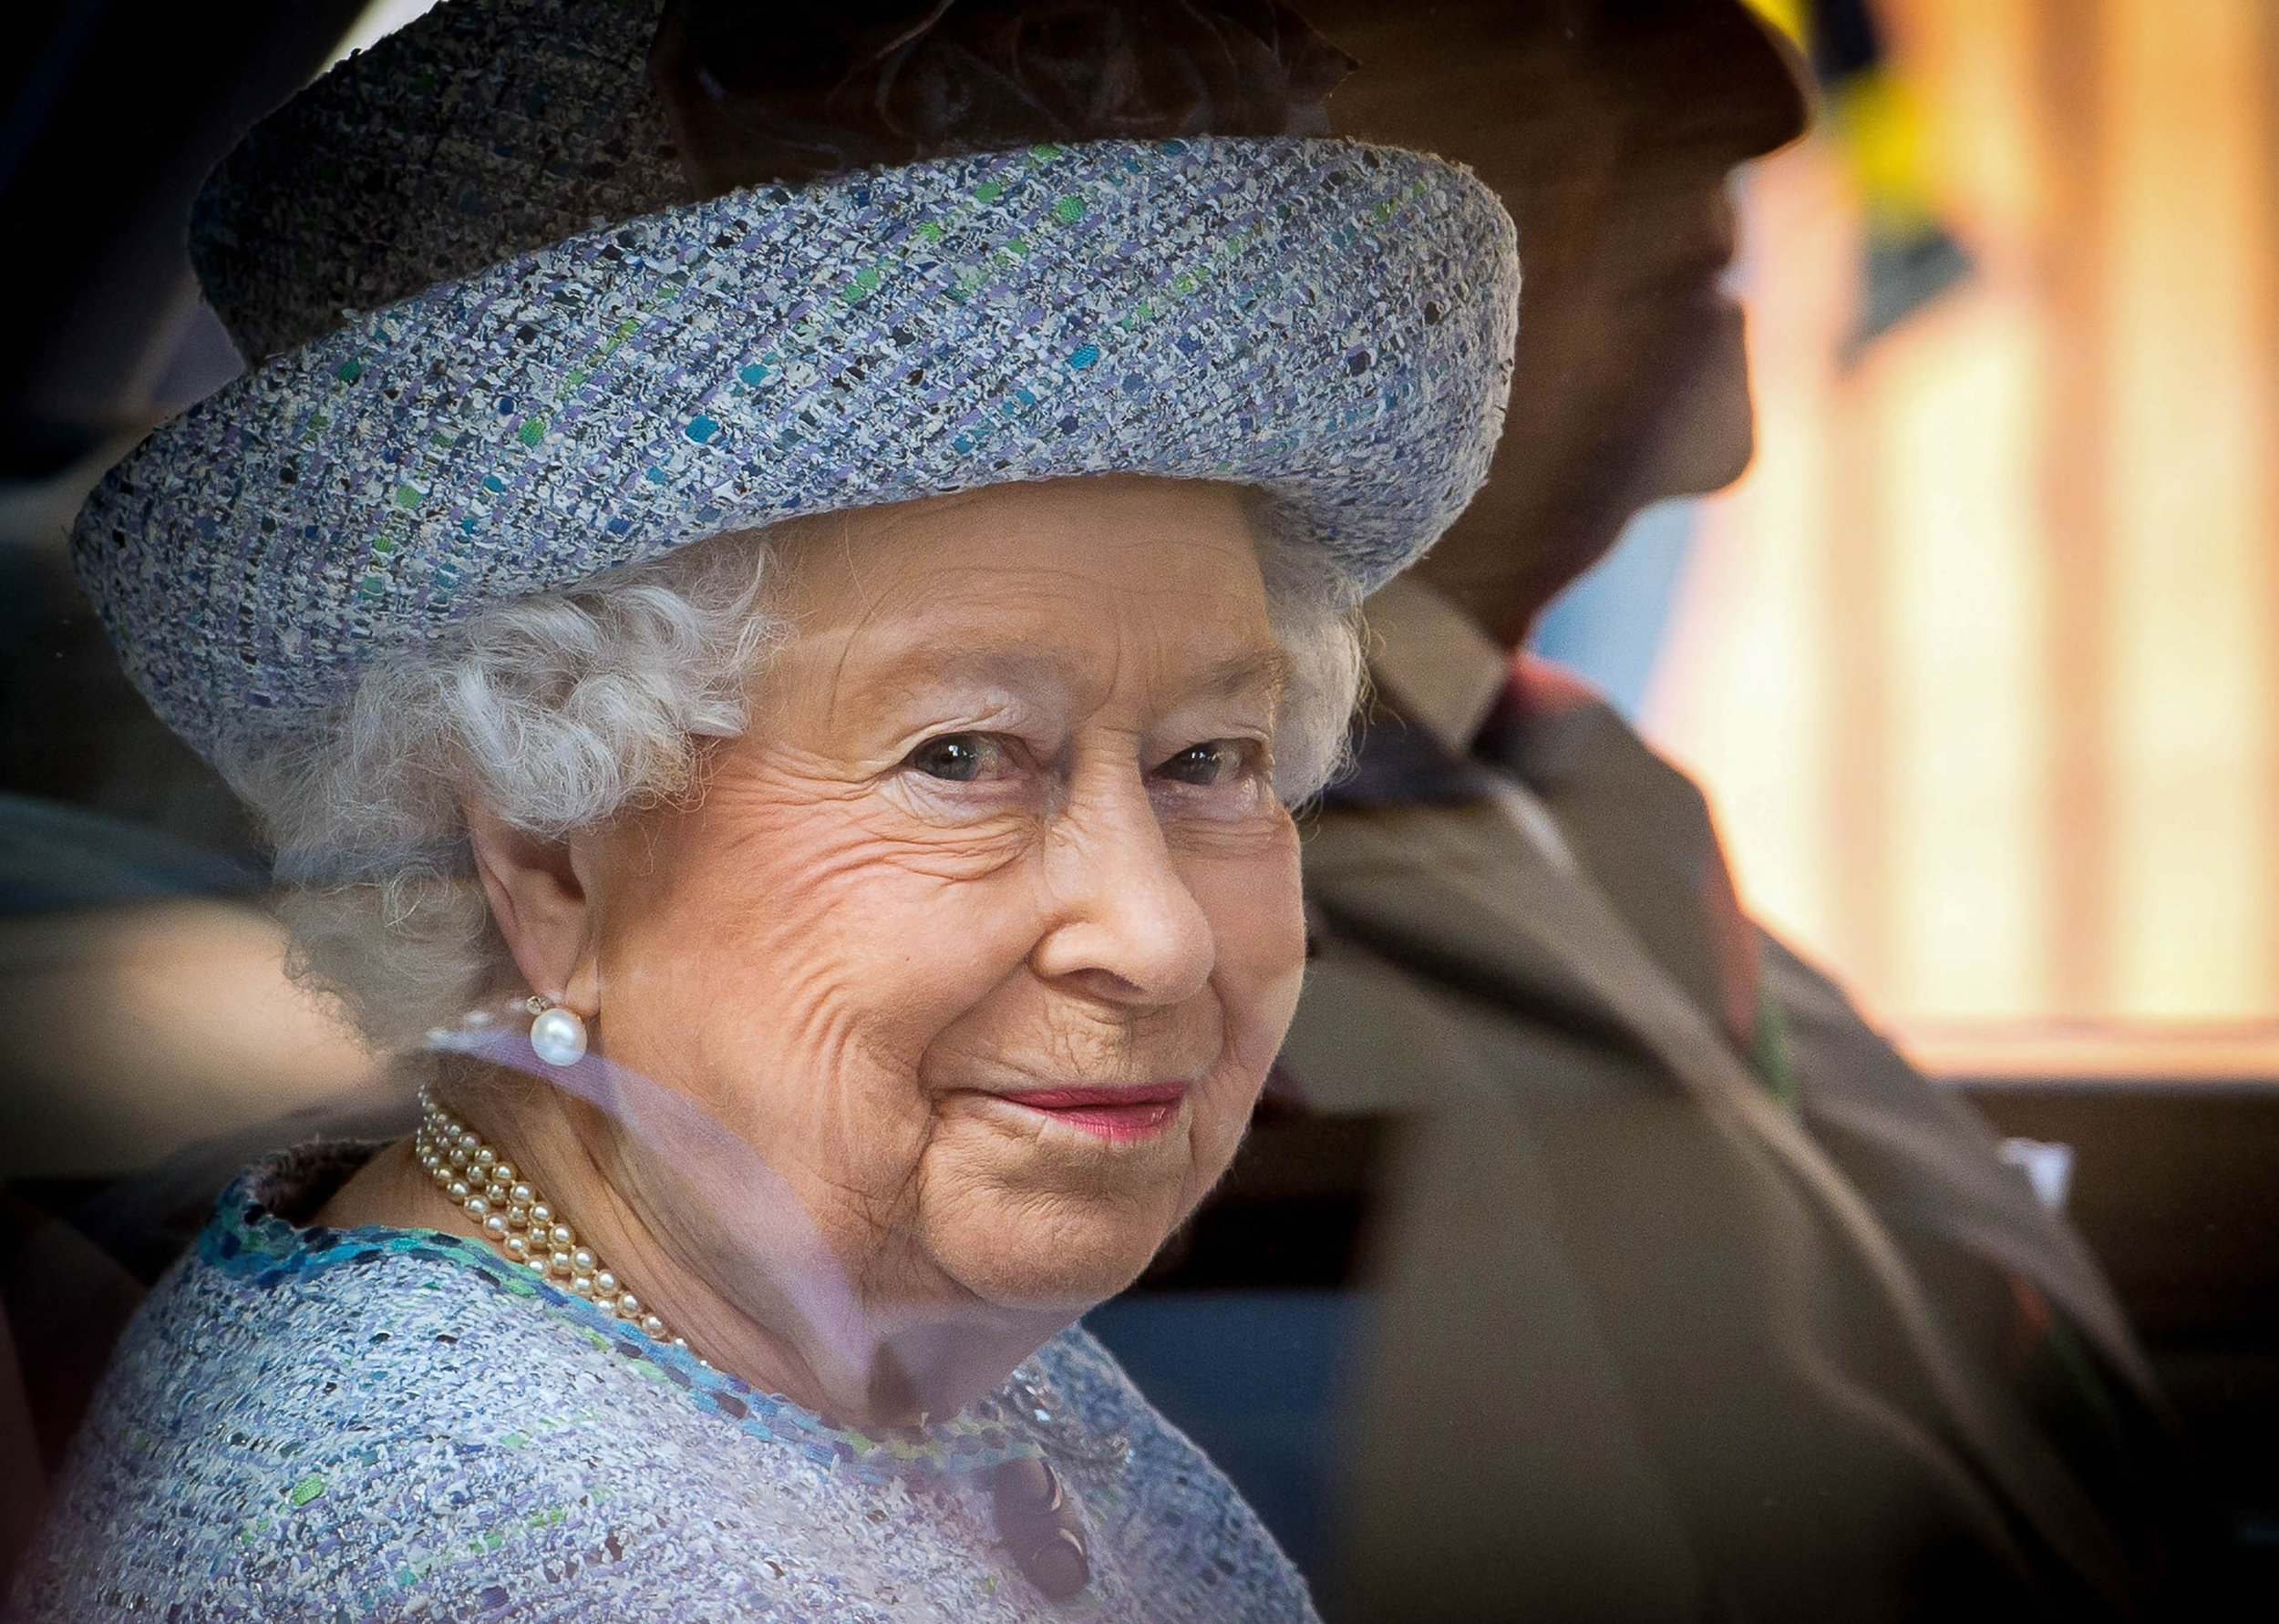 HM Queen Elizabeth II accompanied by Prince Philip being chauffeured away in their car after attending the reopening of the National Army Museum in London following its three year, �23.75 million redevelopment project.Photo by Pete Maclaine  30 March 2017